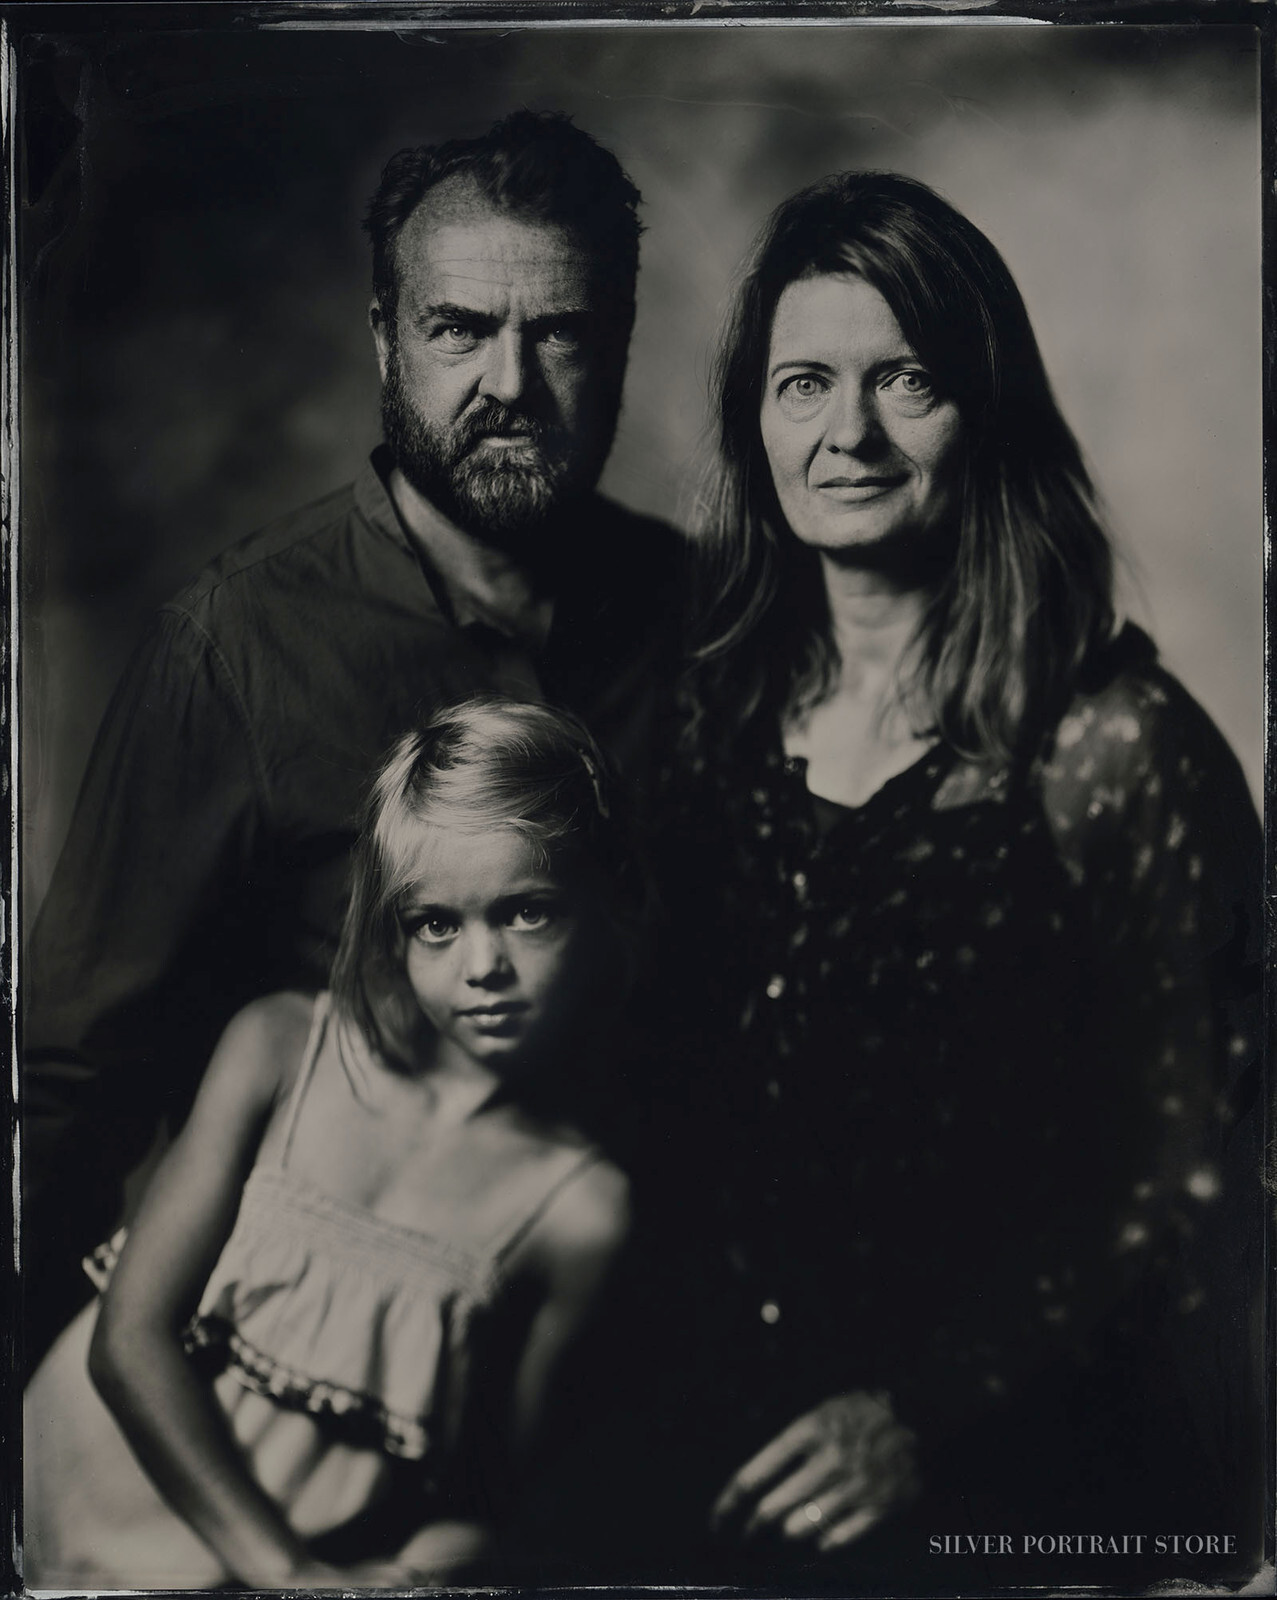 Alex, Julia & Kira-scan from Silver Portrait Store-Wet plate collodion-Tintype 20 x 25 cm.